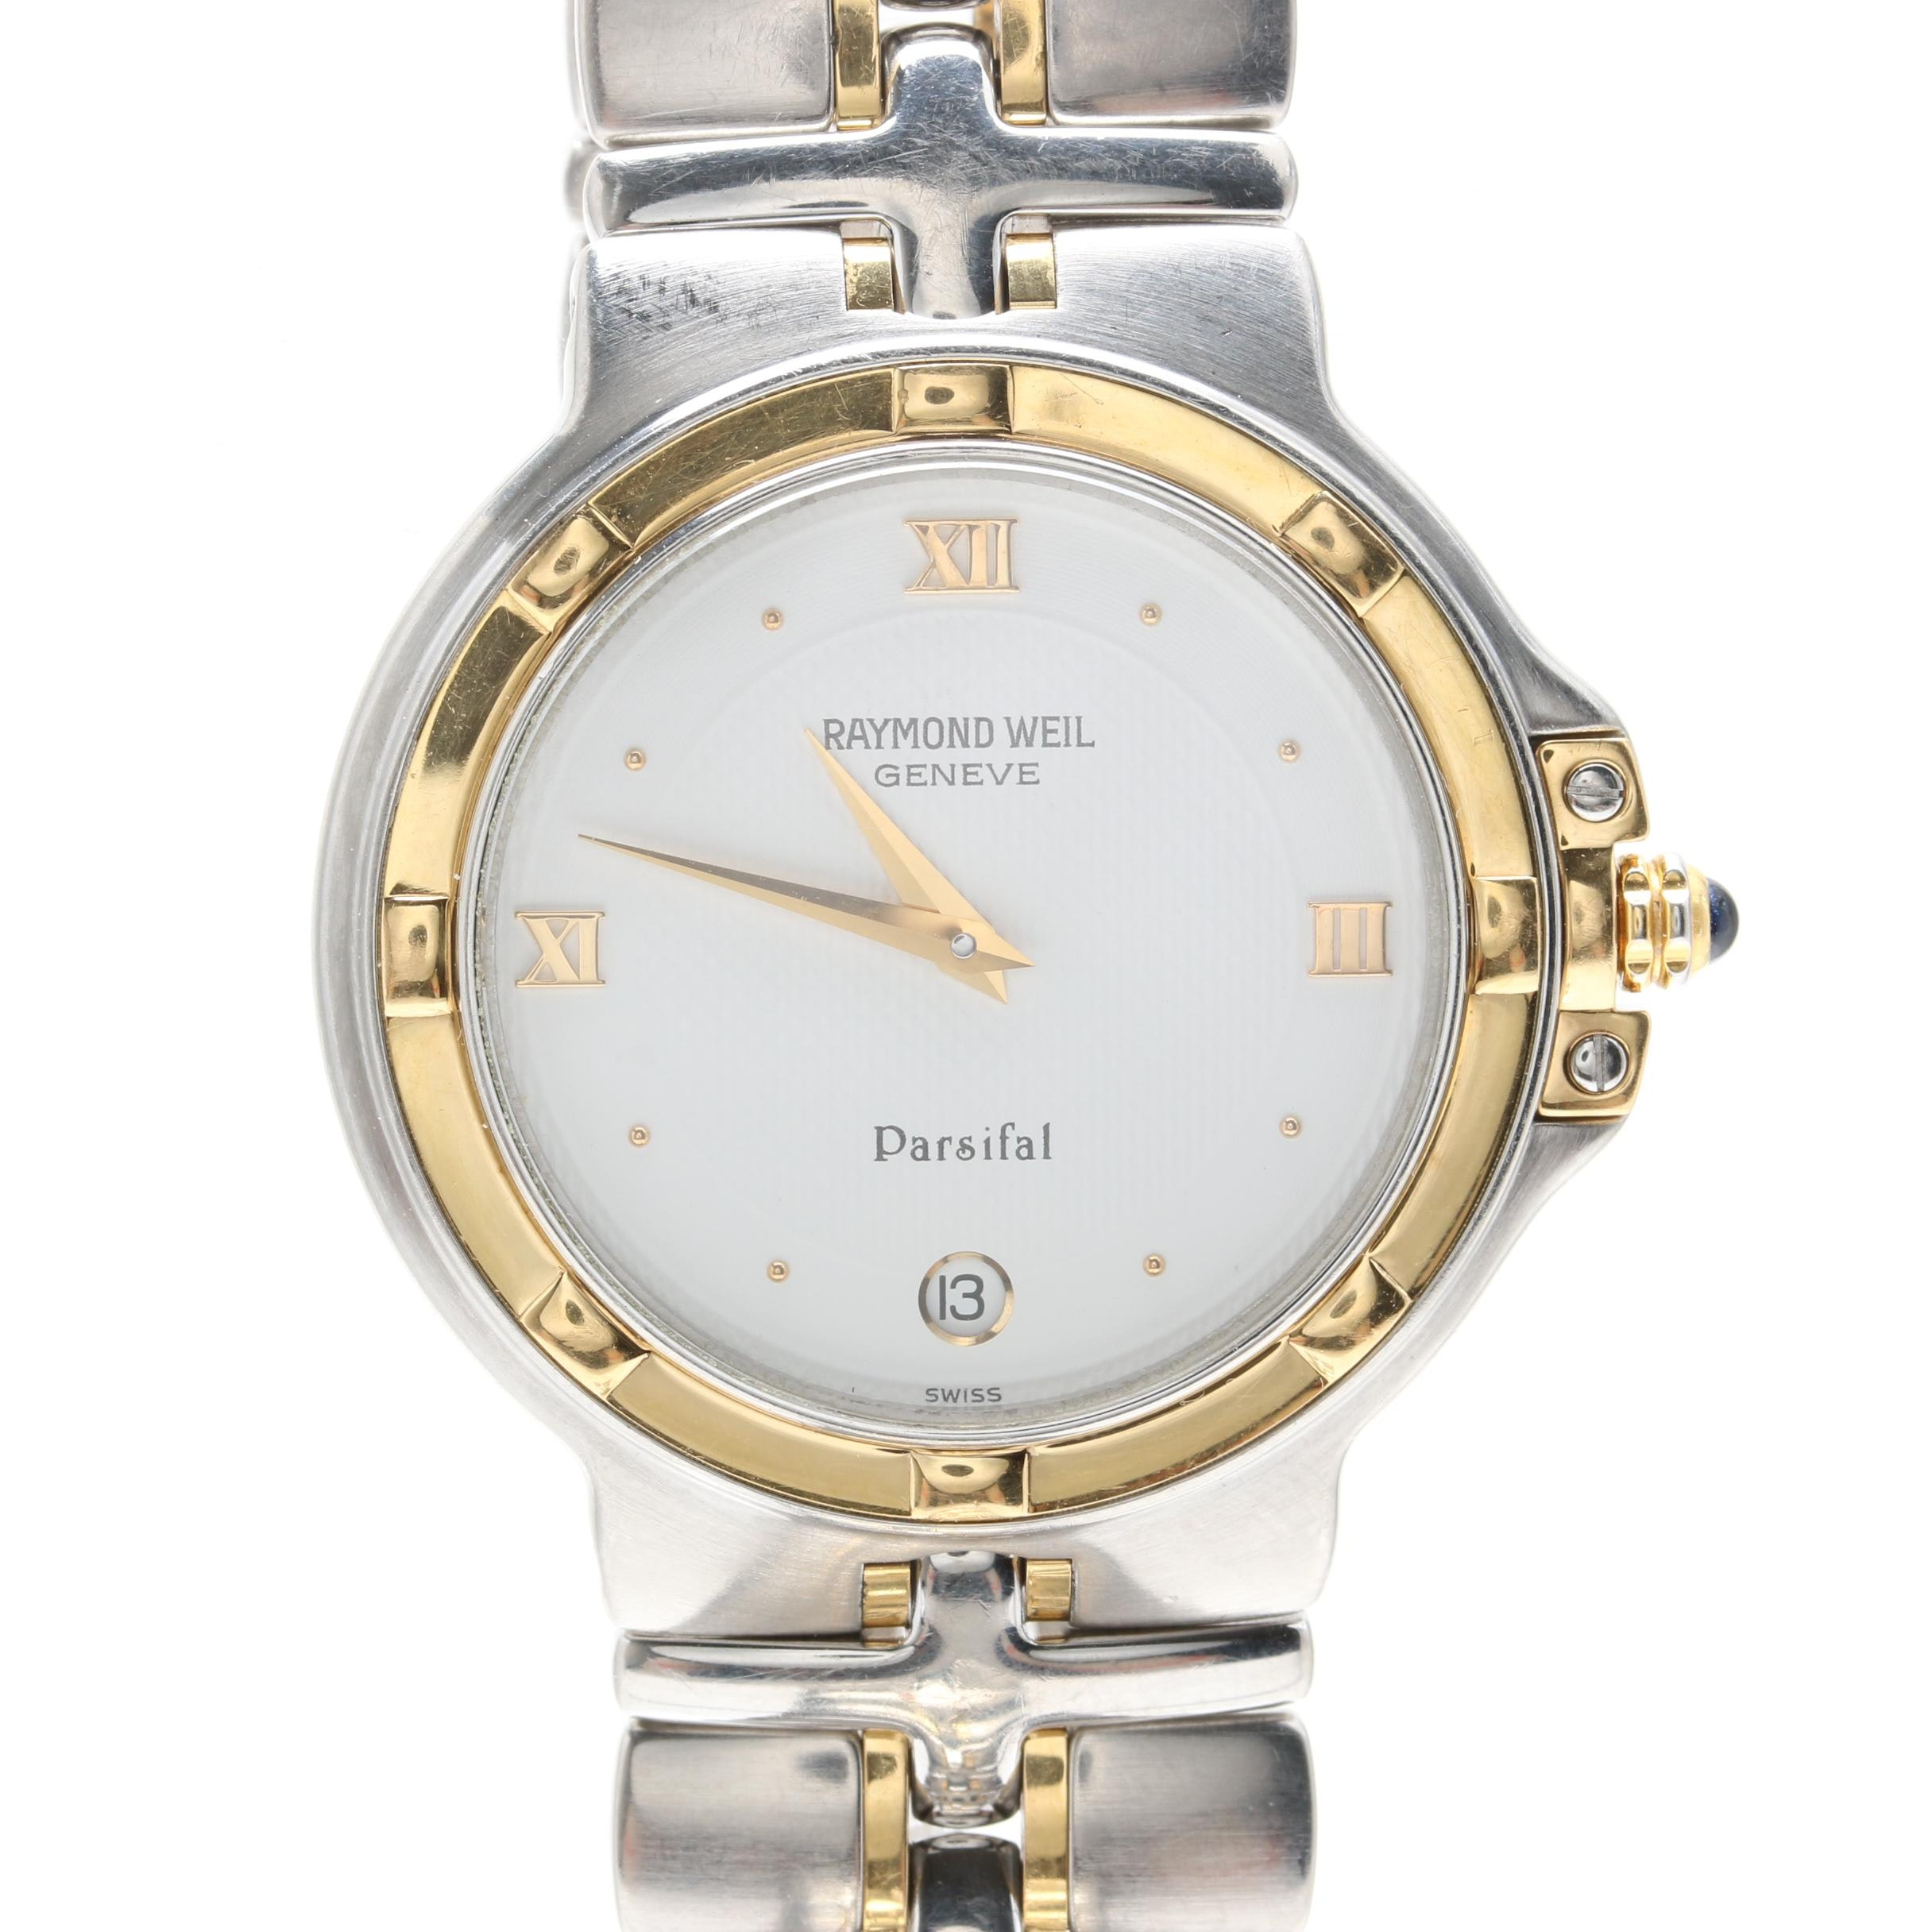 Raymond Weil Parsifal Silver Tone and 18K Gold Wristwatch